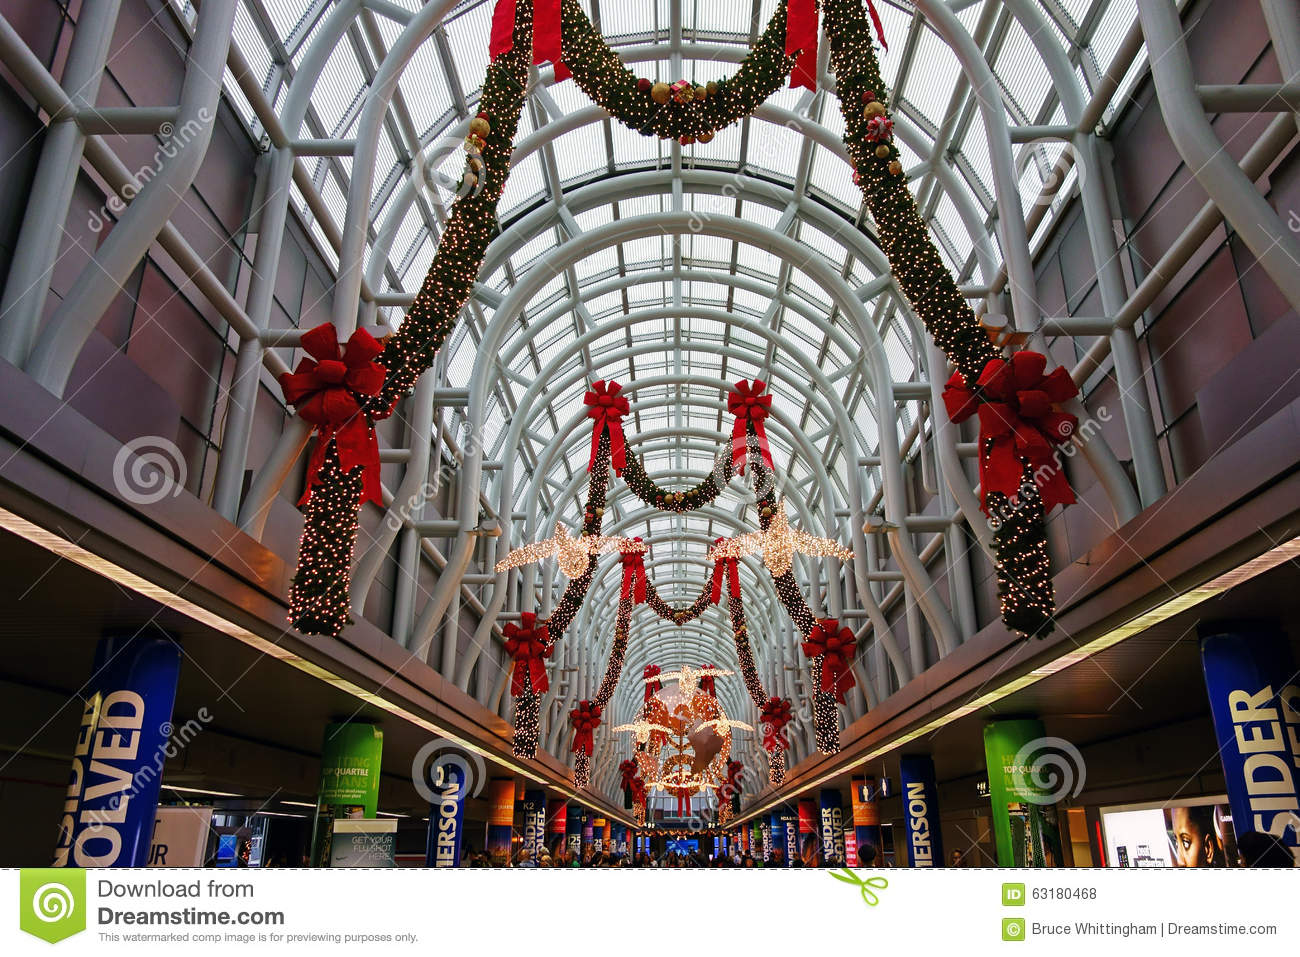 download christmas decorations ohare airport chicago editorial stock photo image of - Chicago Christmas Decorations